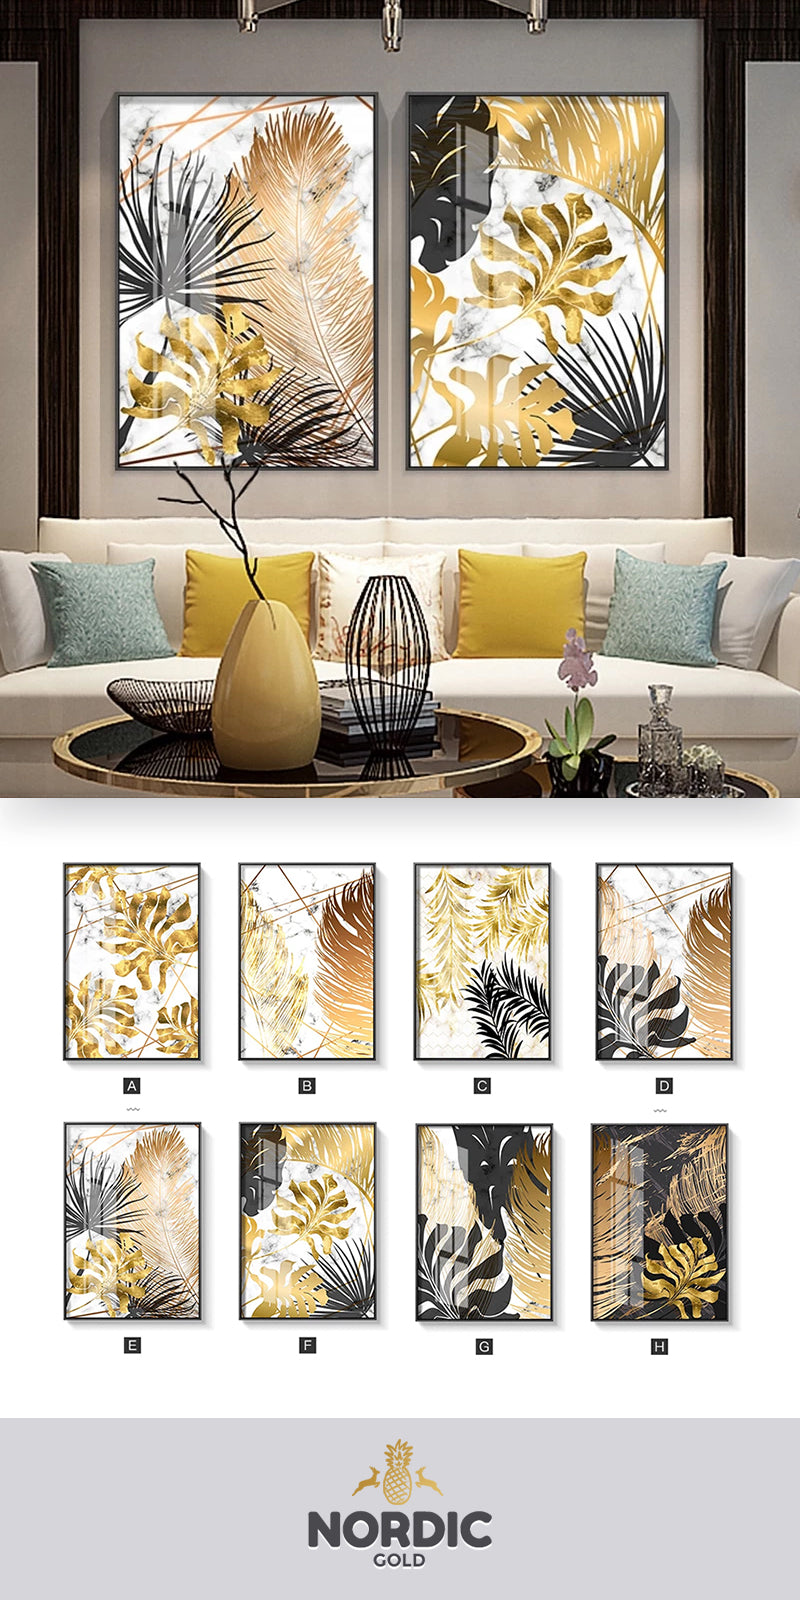 With Its Rich Color Palettes, Exotic Themes And Abstract Biomorphic Designs, The NORDIC GOLD Collection Takes Inspiration From Nature And The Environment..